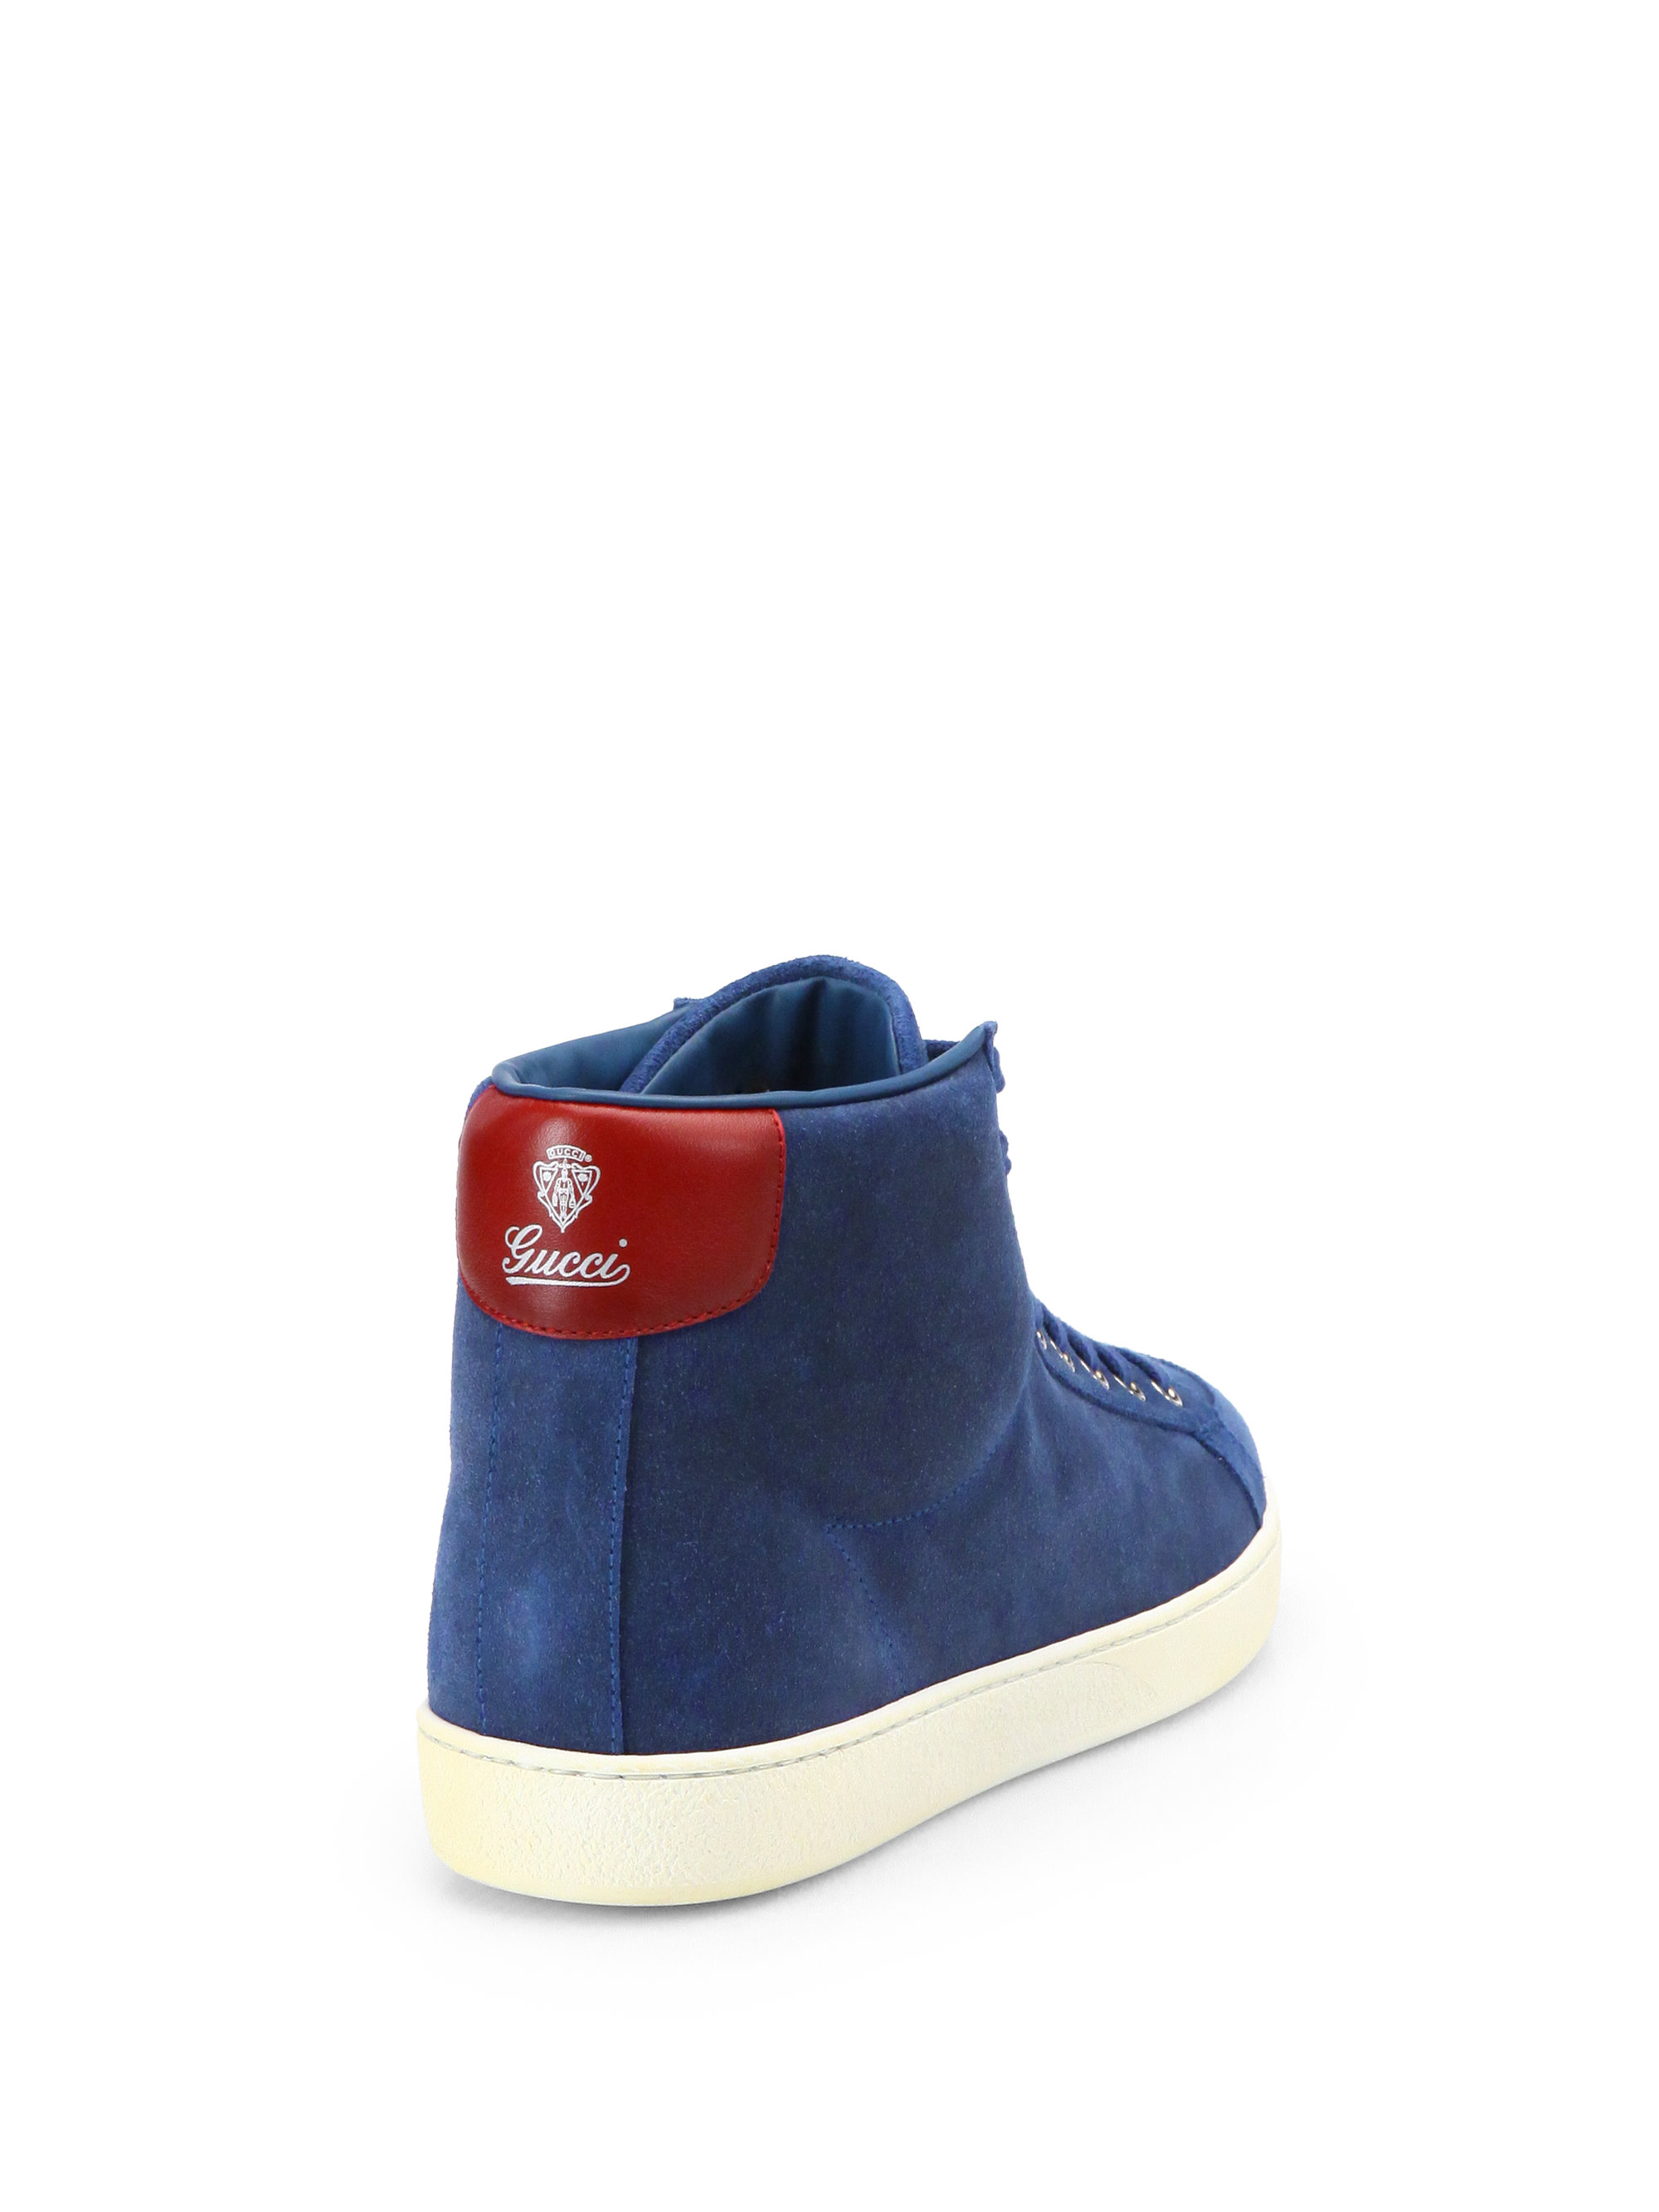 a61a3c48b0c Lyst - Gucci Brooklyn Hightop Sneakers in Blue for Men